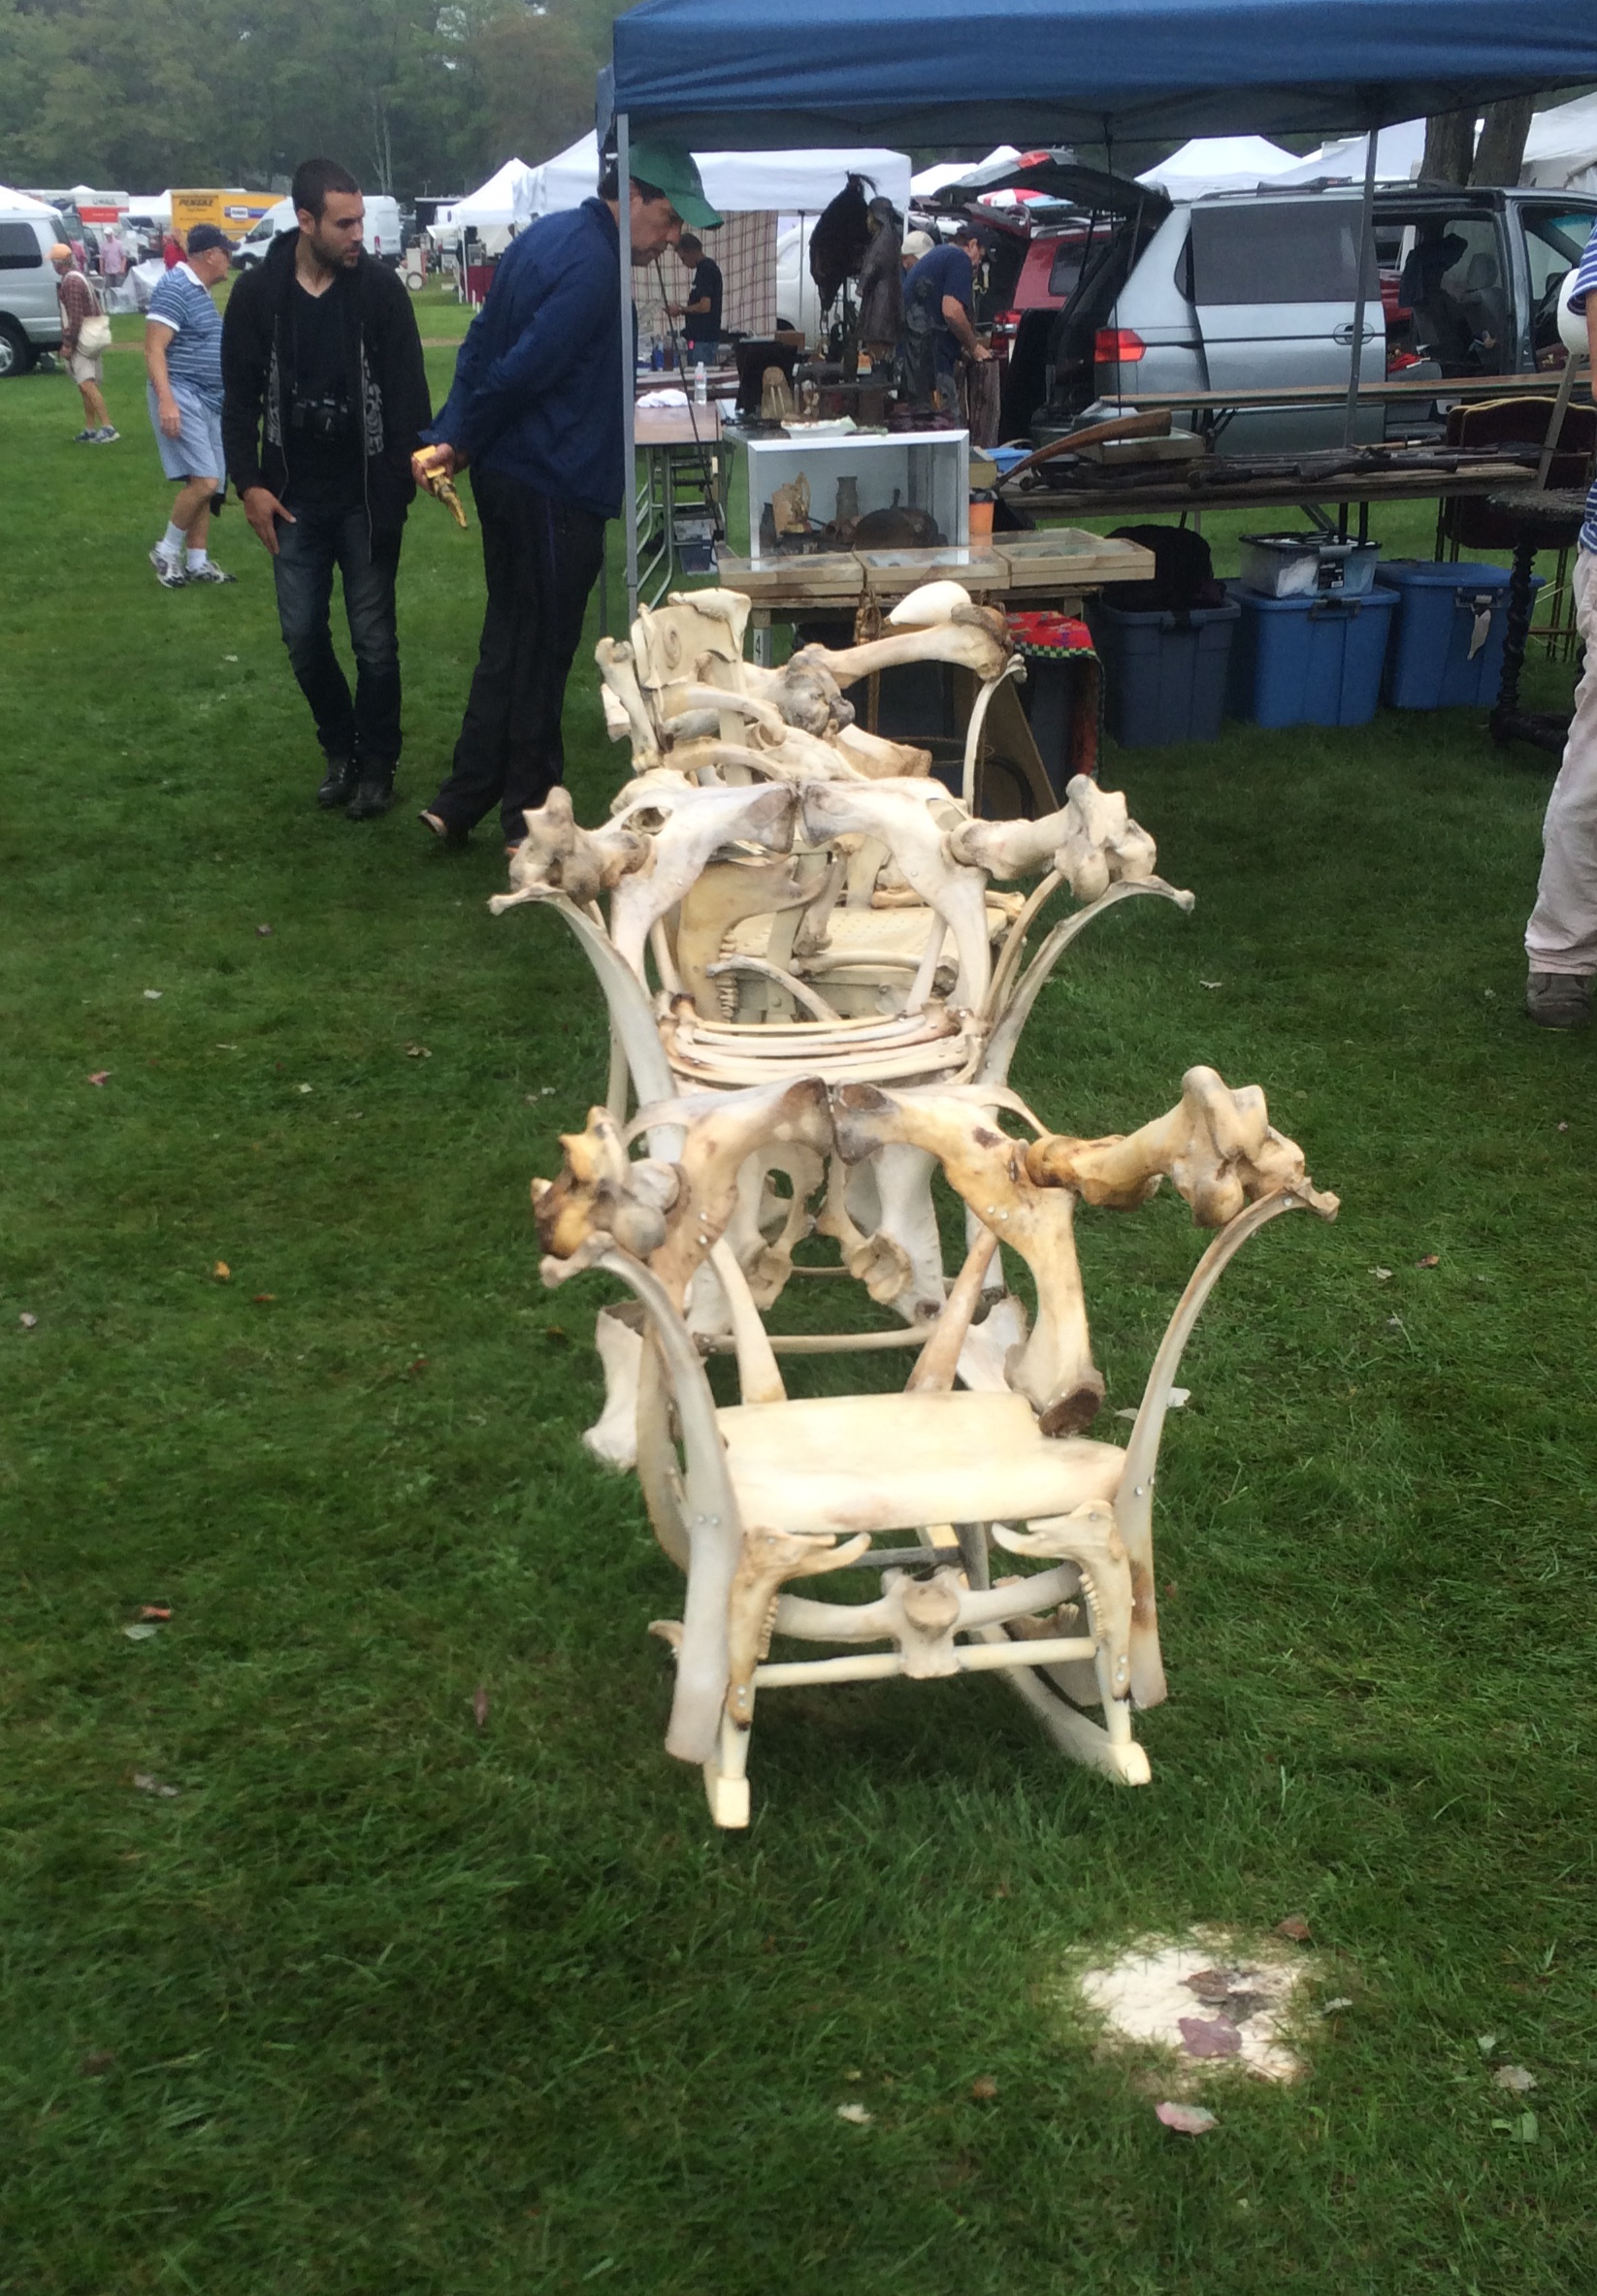 Yes, these are chairs made out of bones. Very unique, but also super creepy.